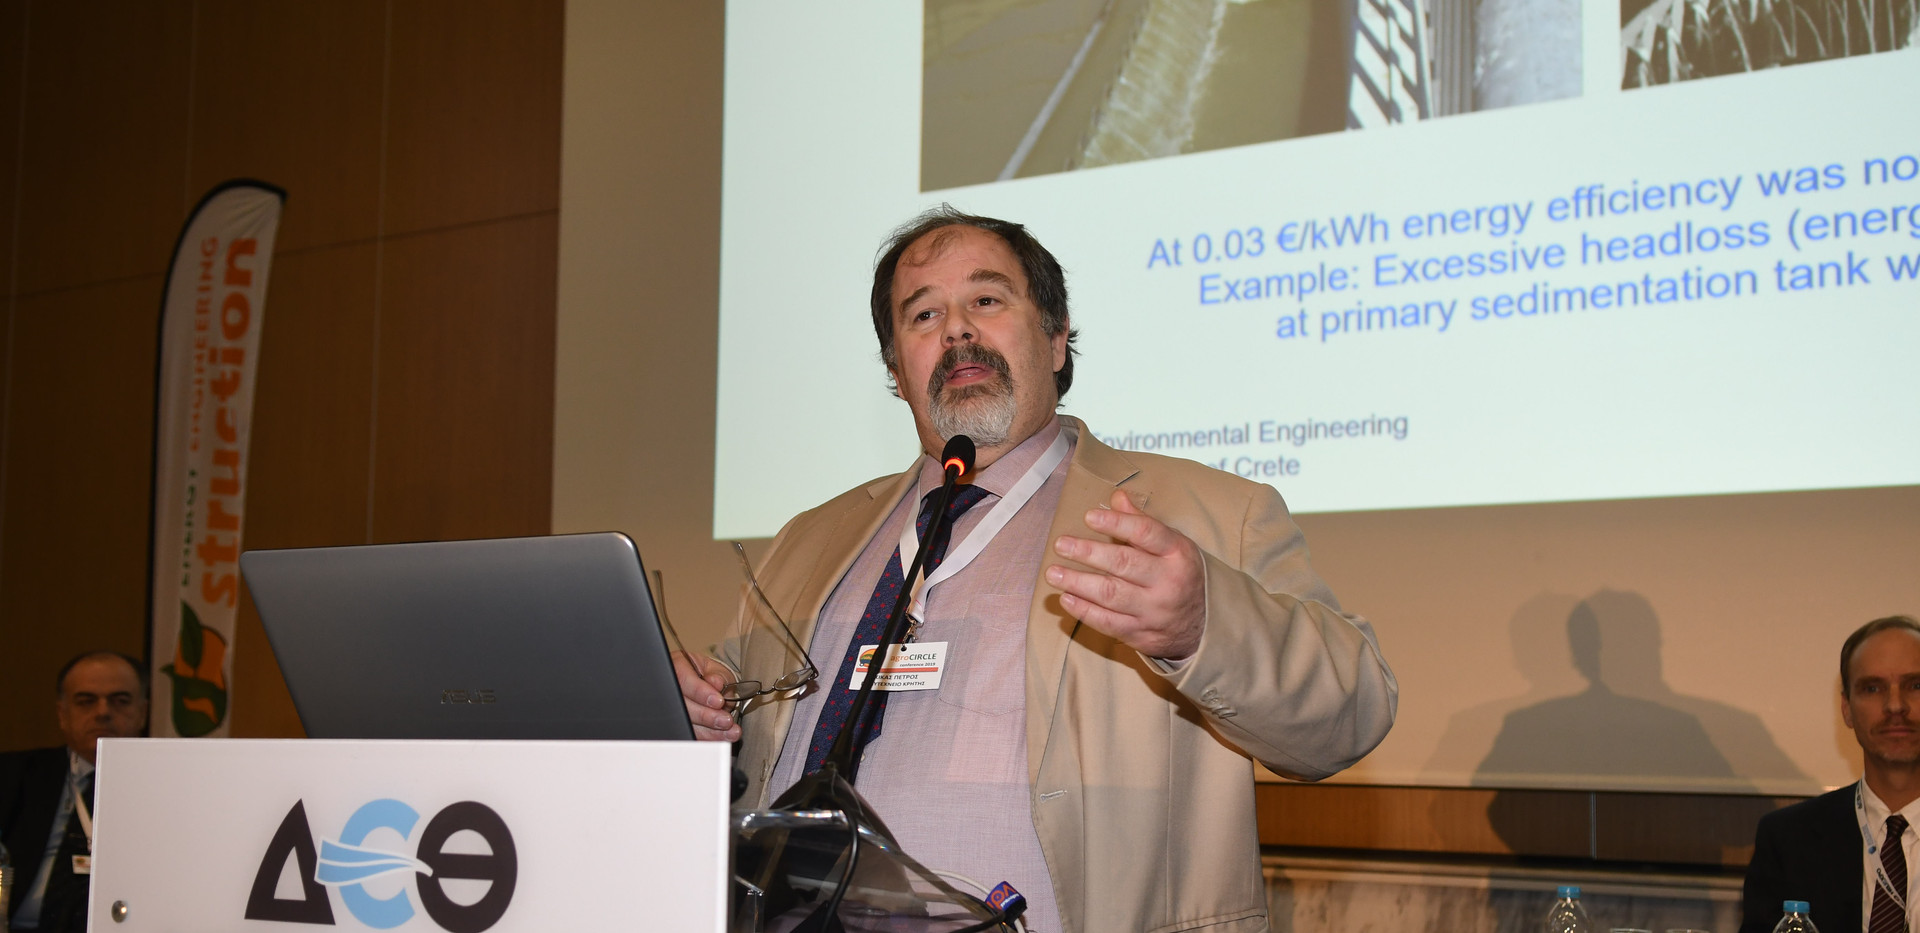 Petros Gikas, Associate Professor, Technical University of Crete